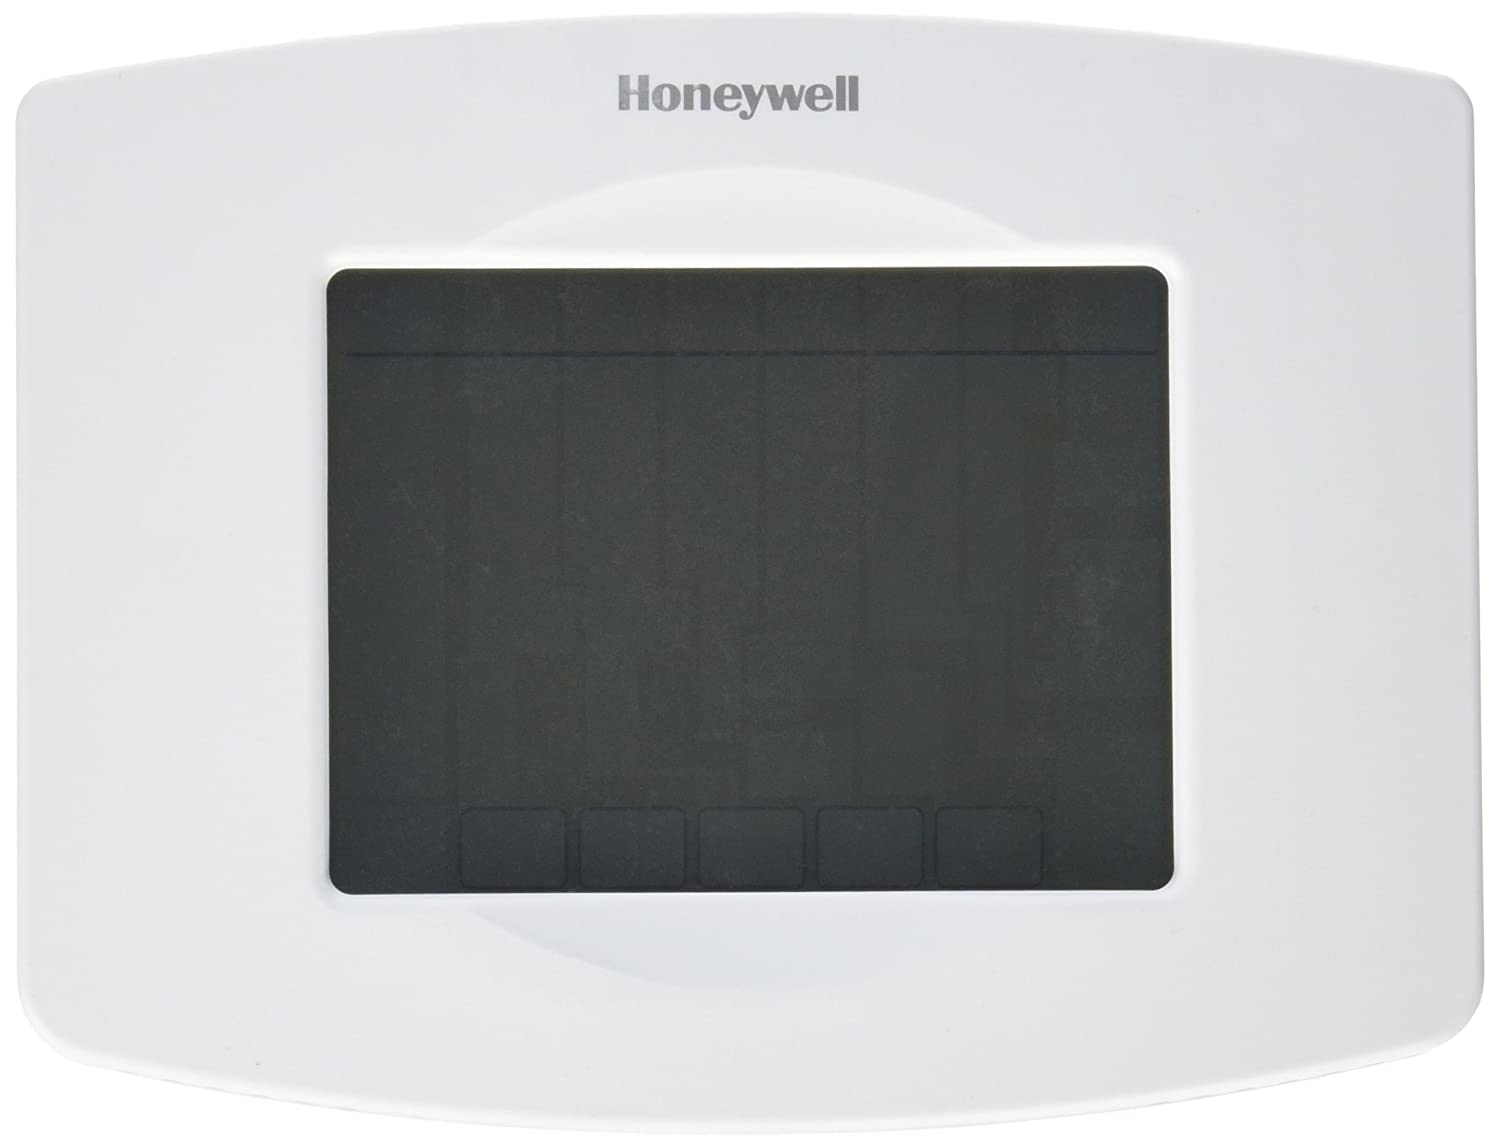 Honeywell Touch Screen Thermostat With Wifi Programmable, Univ 7 Day, Heat & Cool 24 V White - - Amazon.com